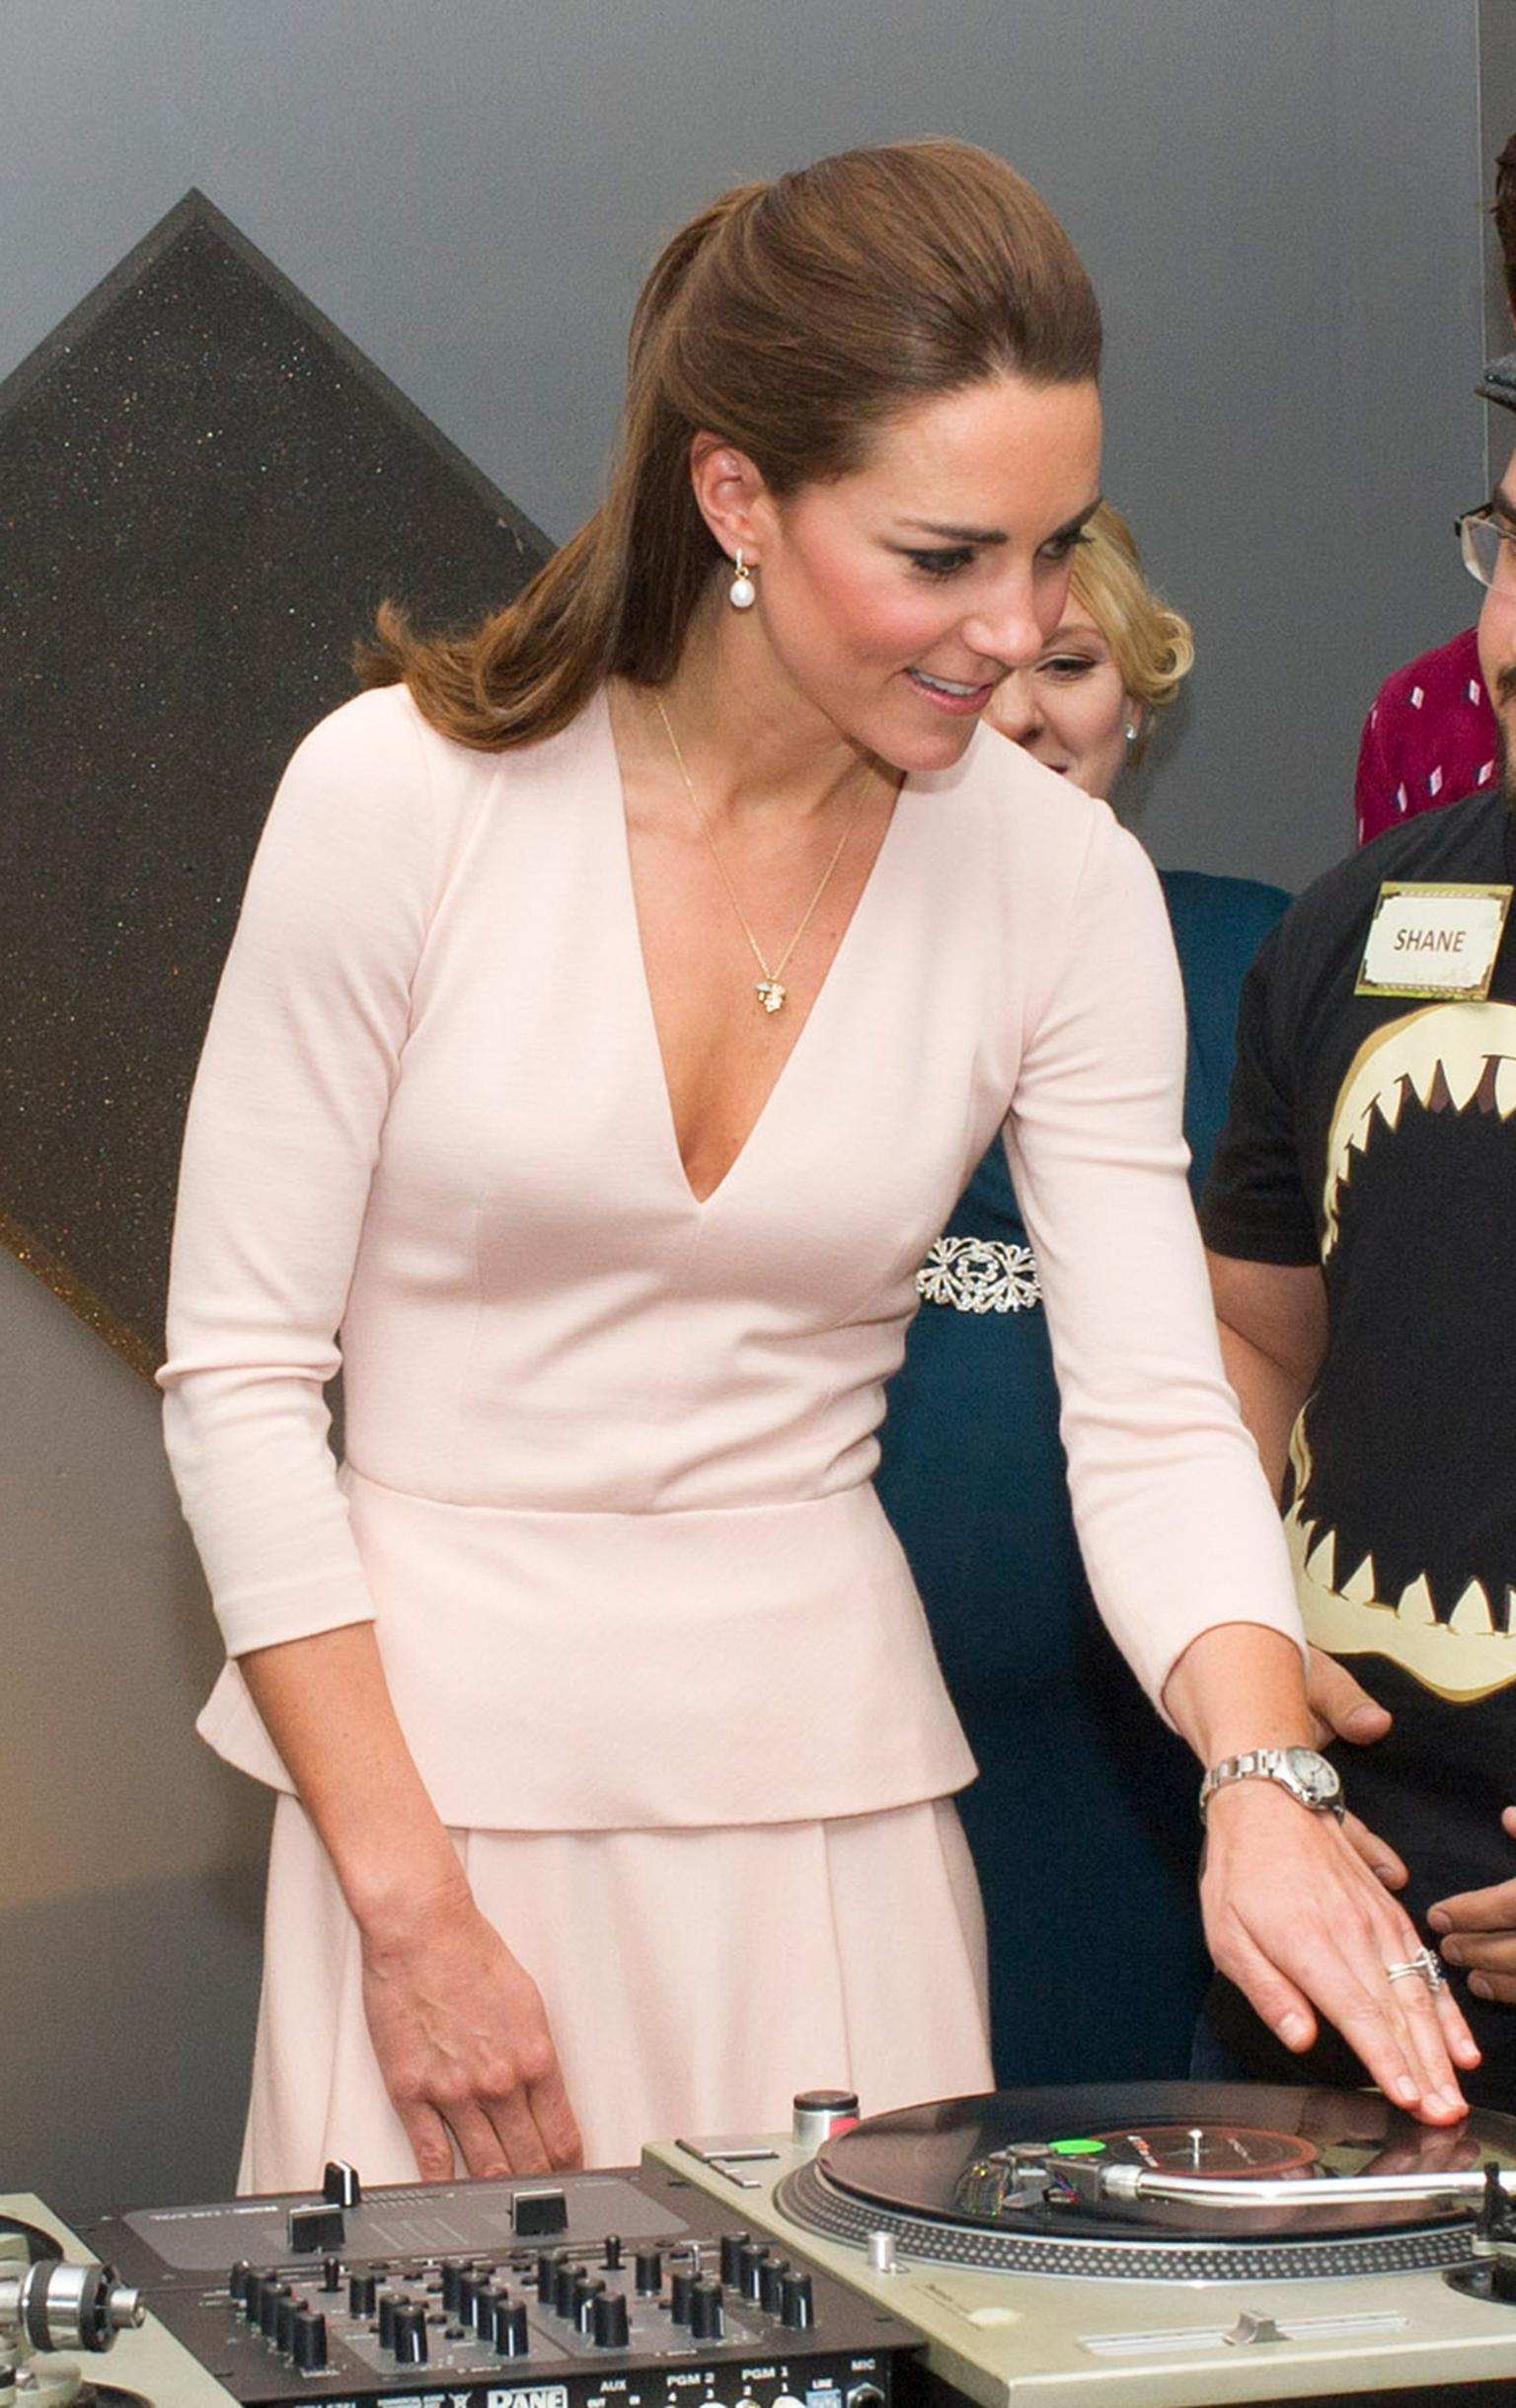 It is not the first time that the Annoushka pearl earrings have earned a place in the Duchess' Royal Tour suitcase. She wore them several times during the Spring 2014 Royal Tour of Australia and New Zealand.